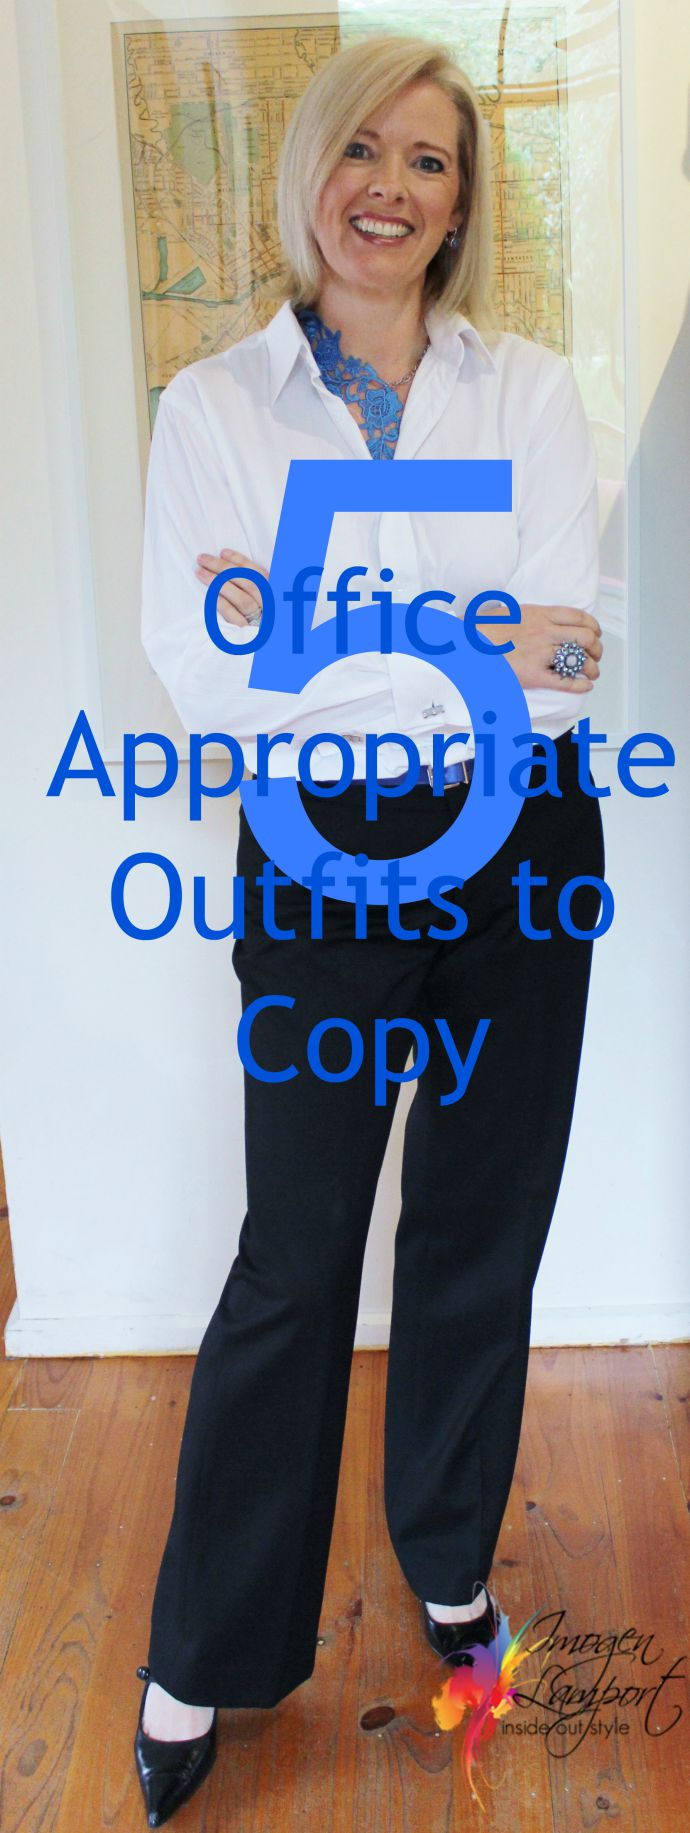 5 Office Appropriate Outfits to Copy - What to Wear to the Office